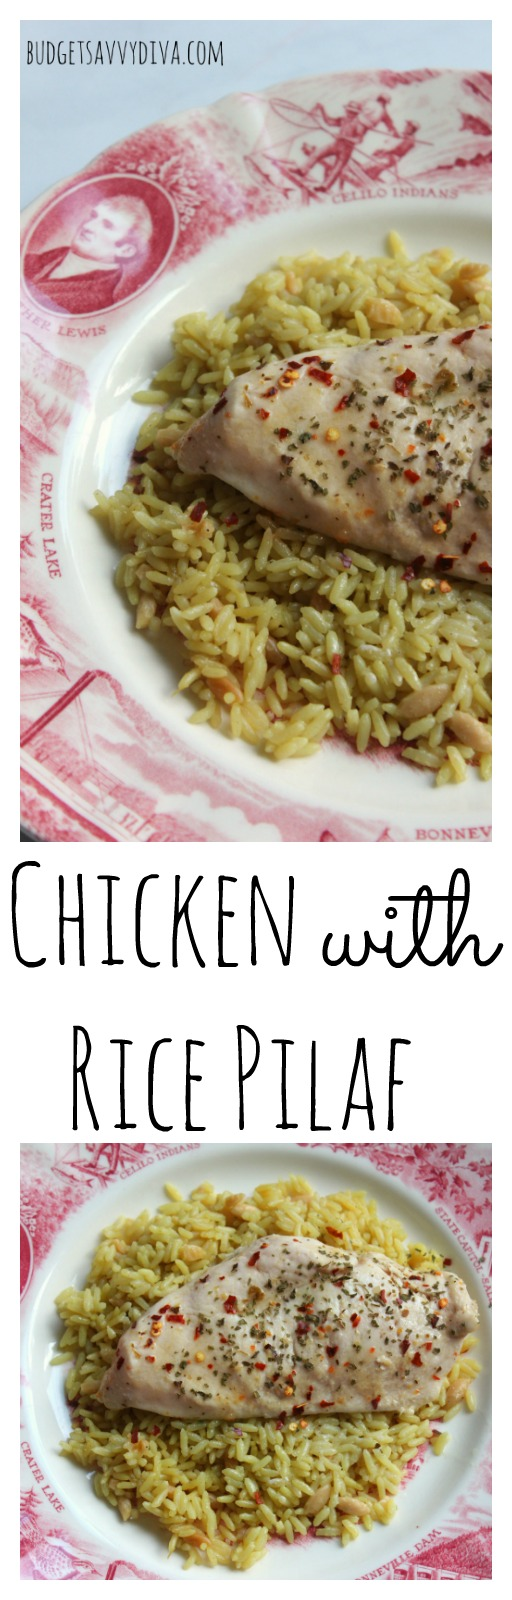 chicken-with-rice-pilaf-final